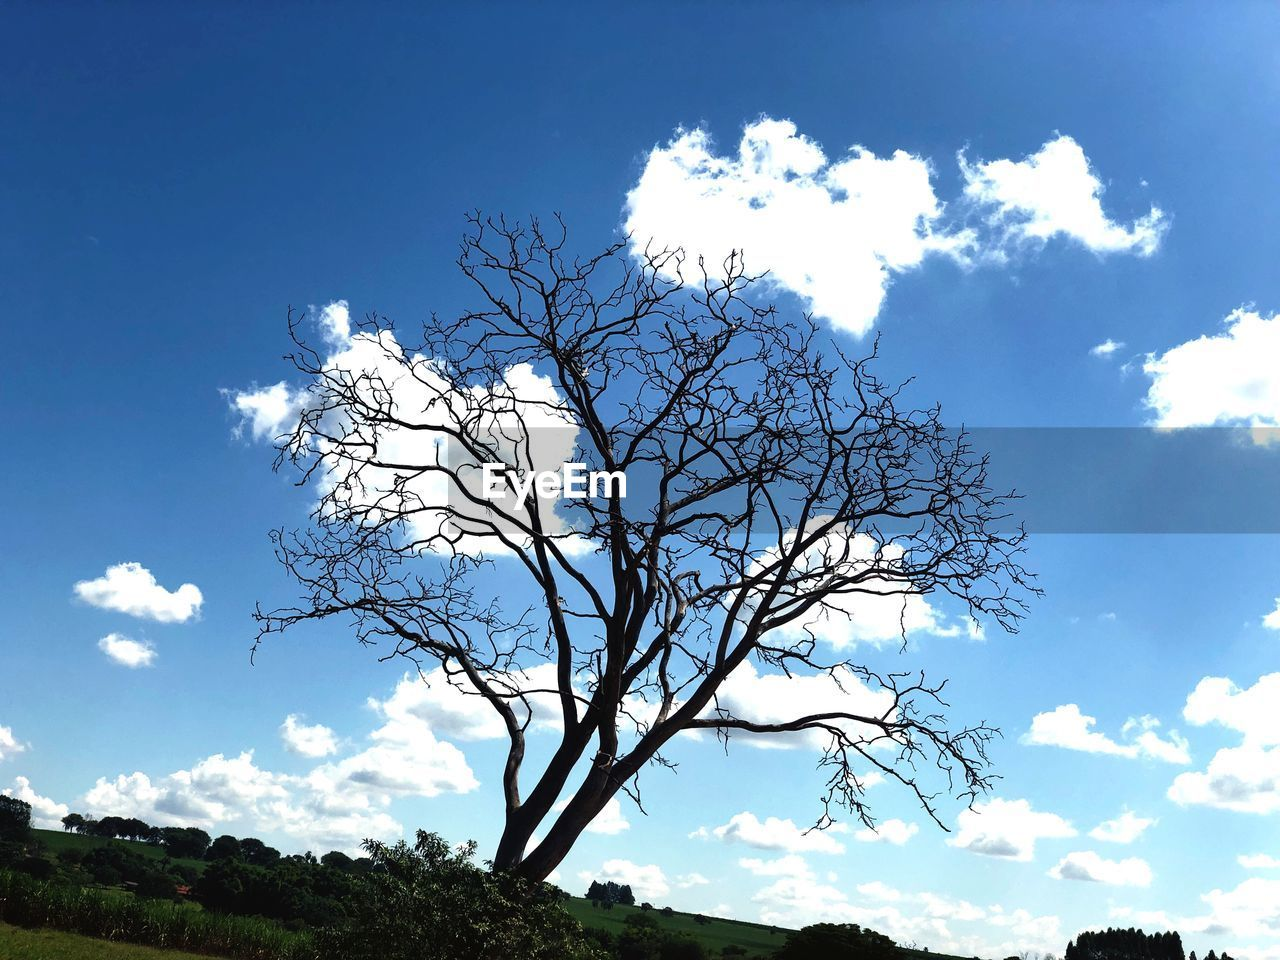 sky, cloud - sky, tree, plant, low angle view, tranquility, beauty in nature, nature, day, branch, bare tree, scenics - nature, no people, blue, tranquil scene, outdoors, sunlight, growth, silhouette, non-urban scene